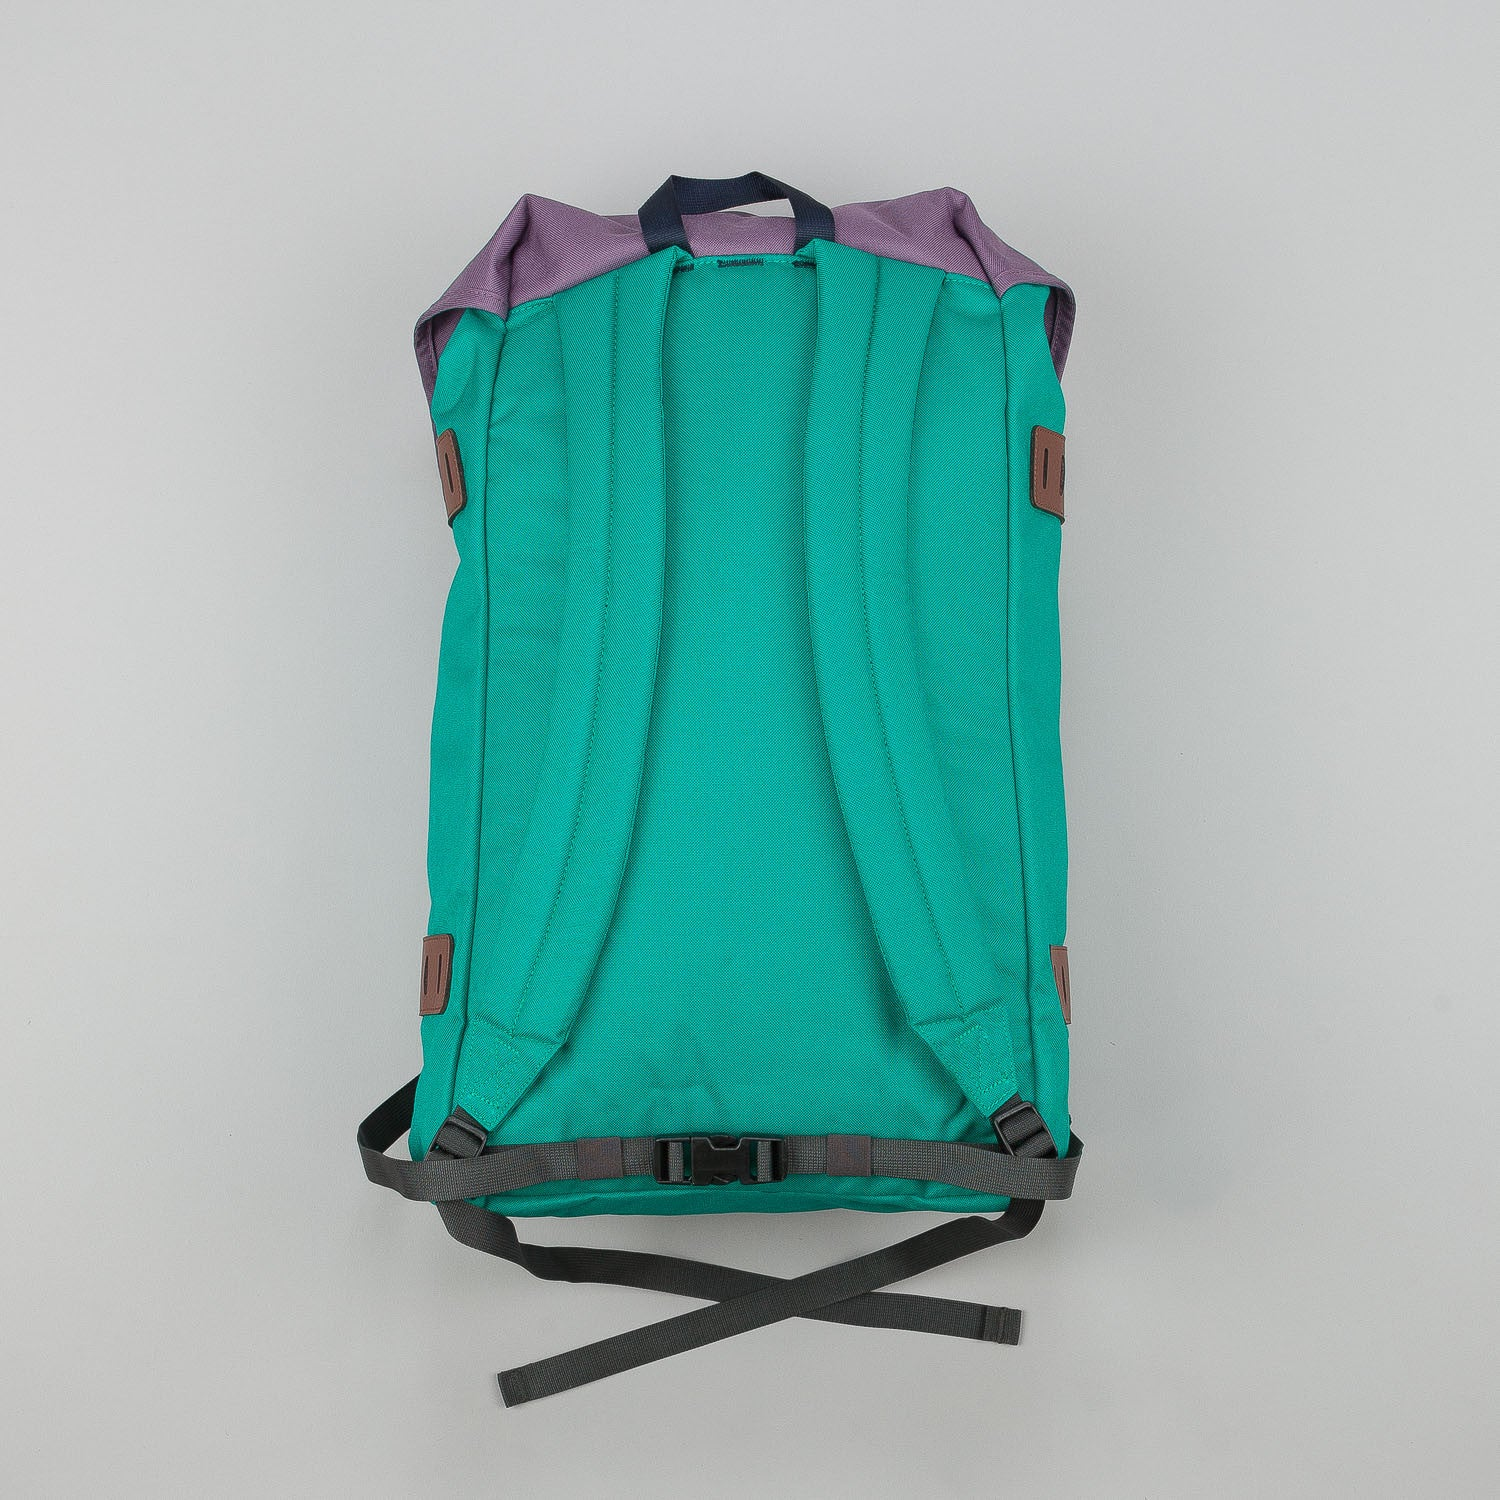 Patagonia Arbor Backpack - Emerald